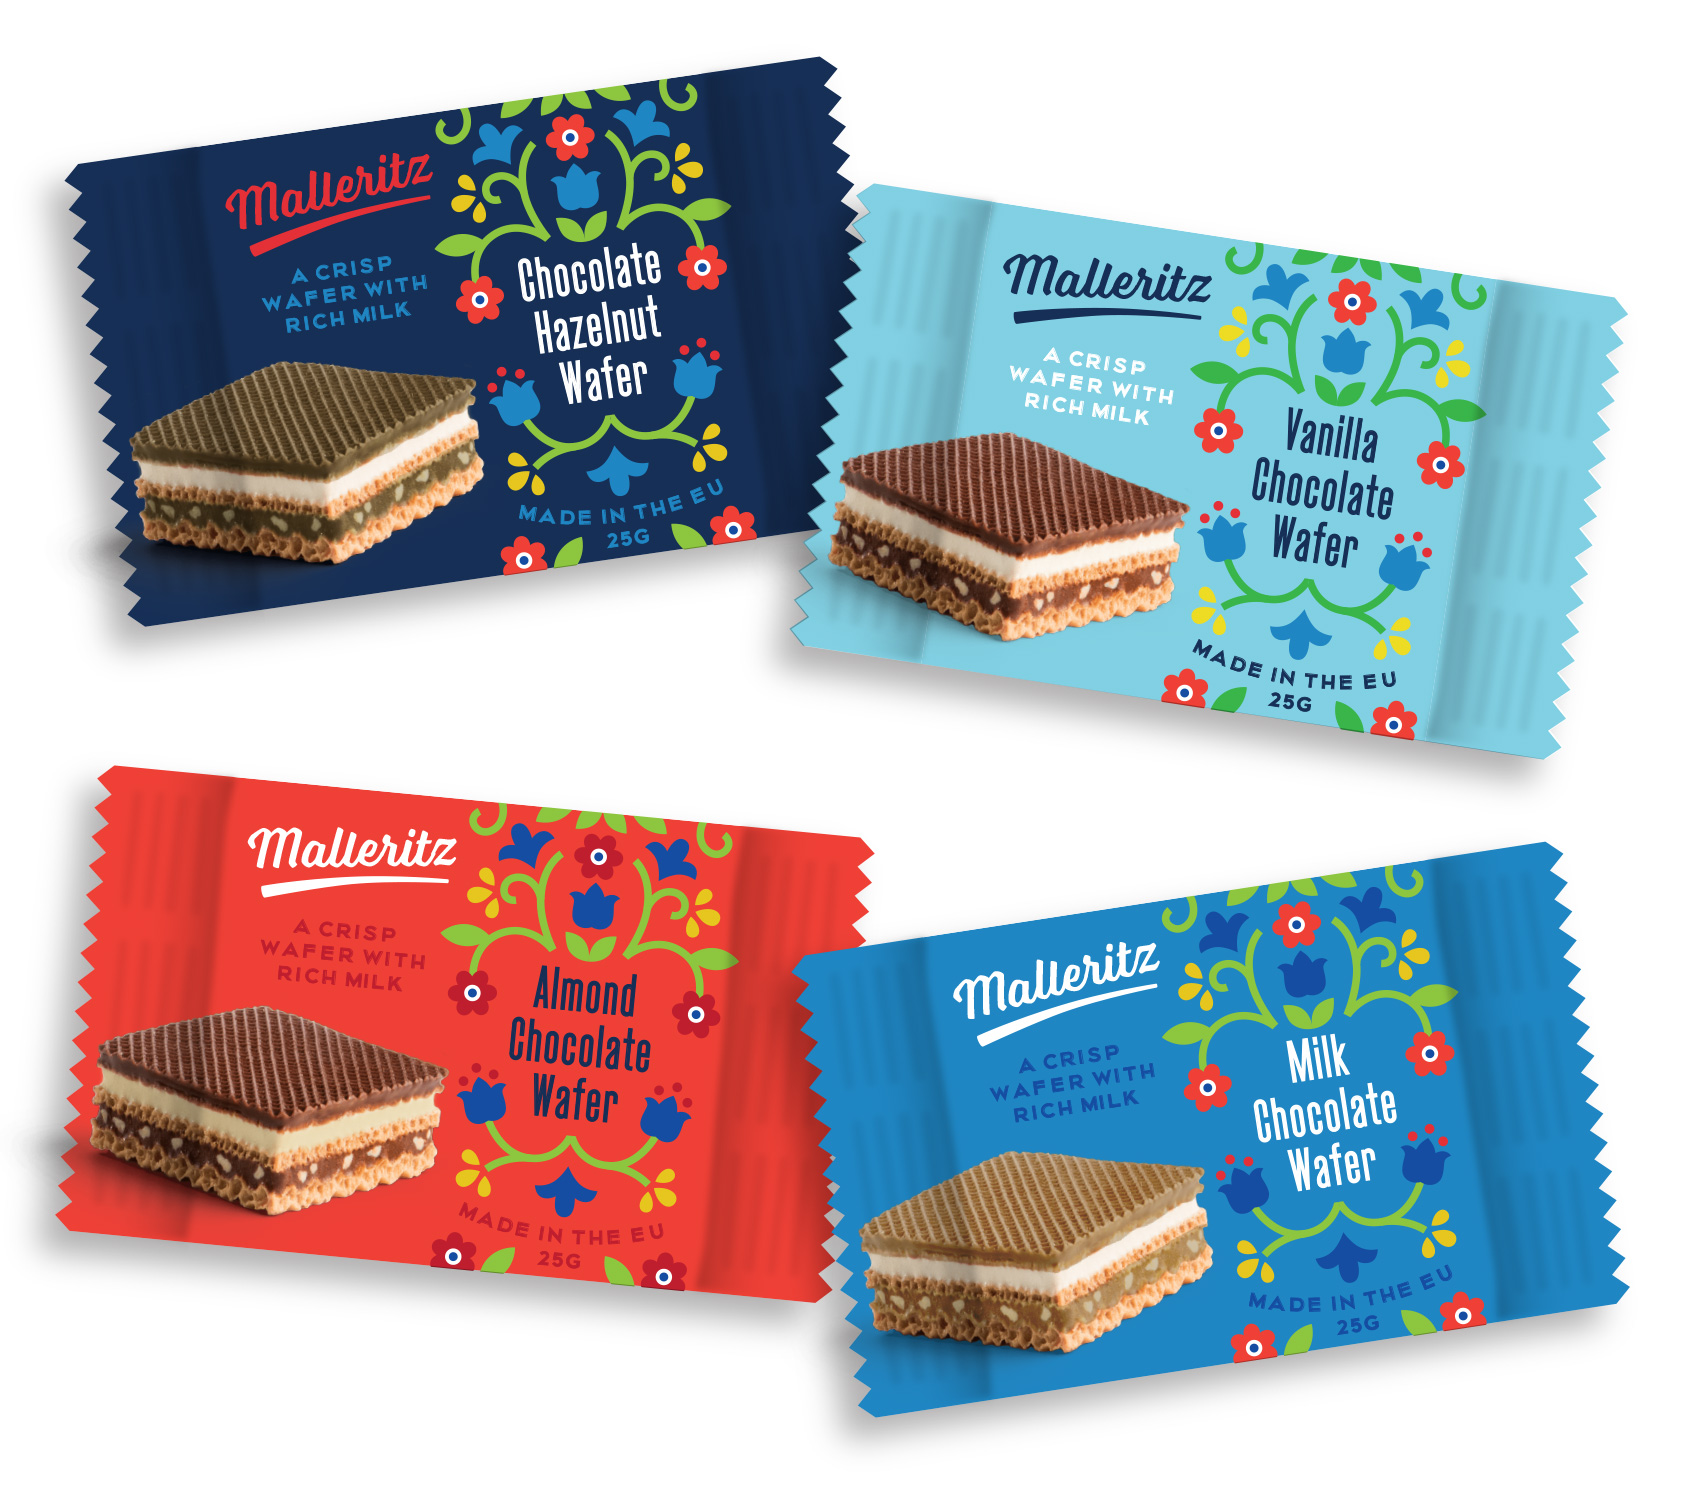 Concept packaging for chocolate wafers in four flavor ways: chocolate, vanilla, milk chocolate, and hazelnut. Illustration in a modern style but with traditional European motifs.